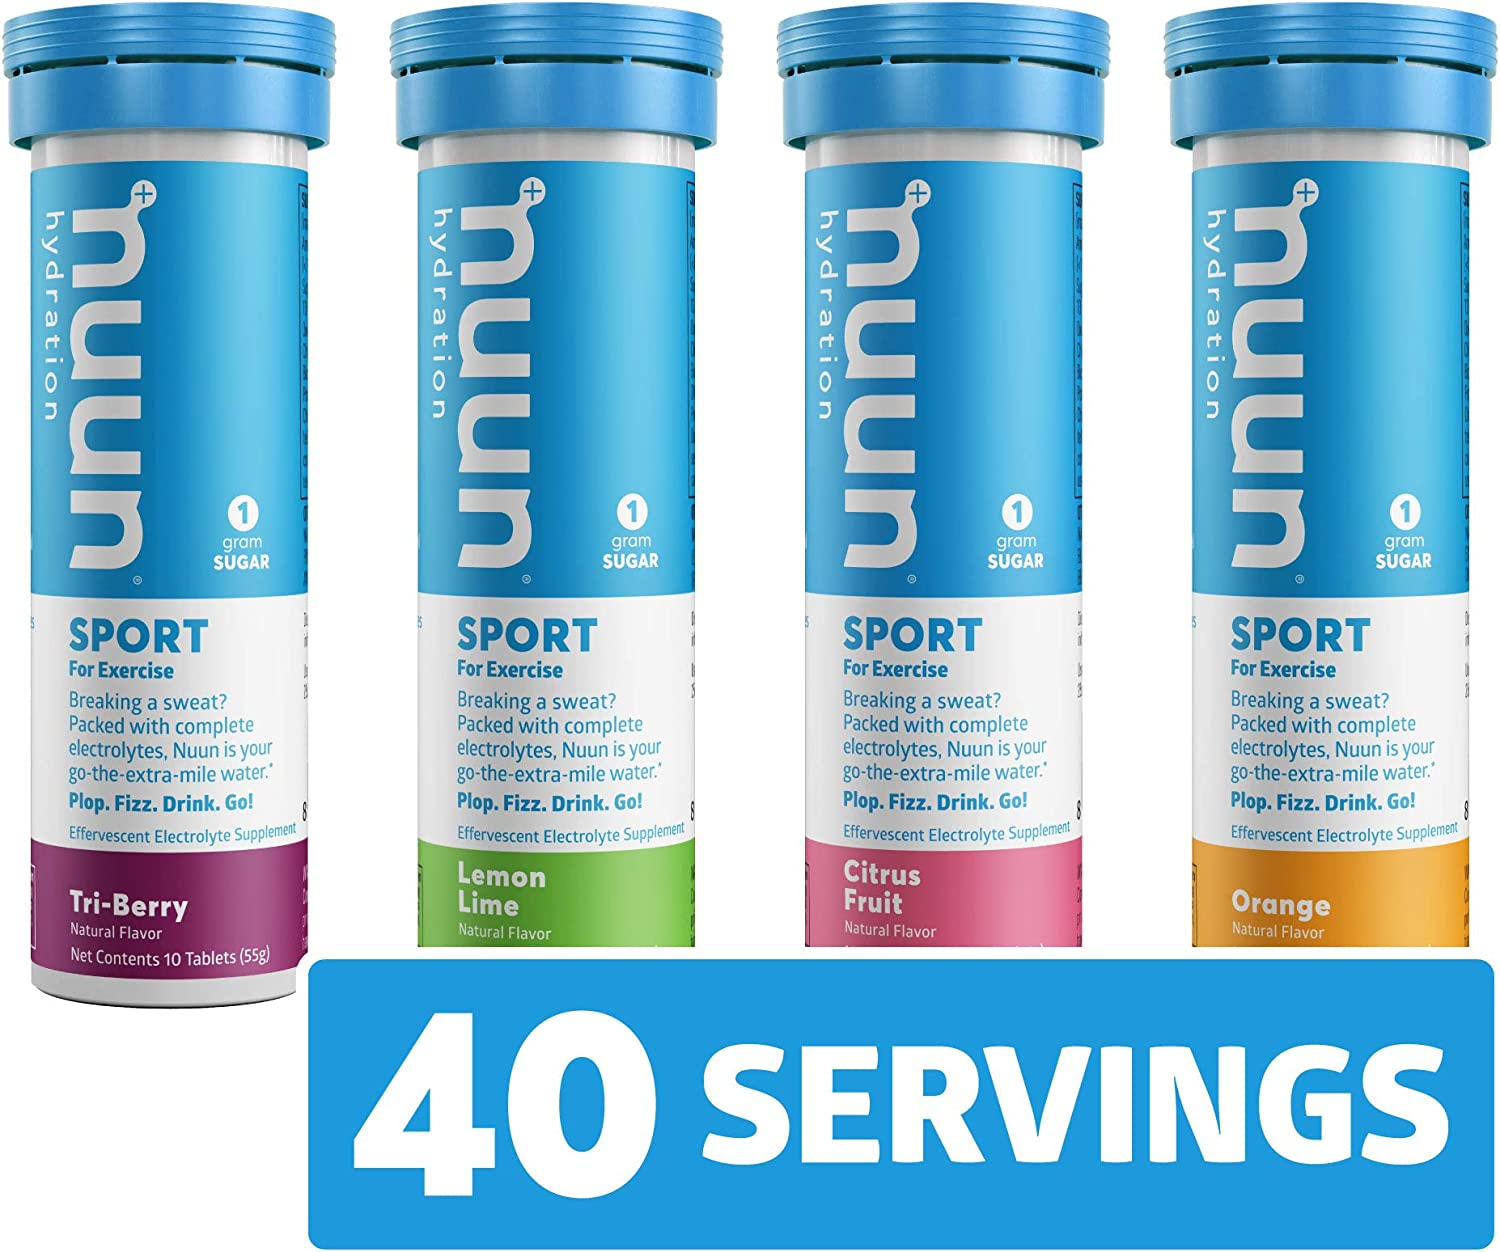 Nuun Sport: Electrolyte Tablets, Effervescent Hydration Supplement, Citrus Berry Mixed Flavor Pack, Box of 4 Tubes (40 servings), Sports Drink for Replenishment of Essential Electrolytes